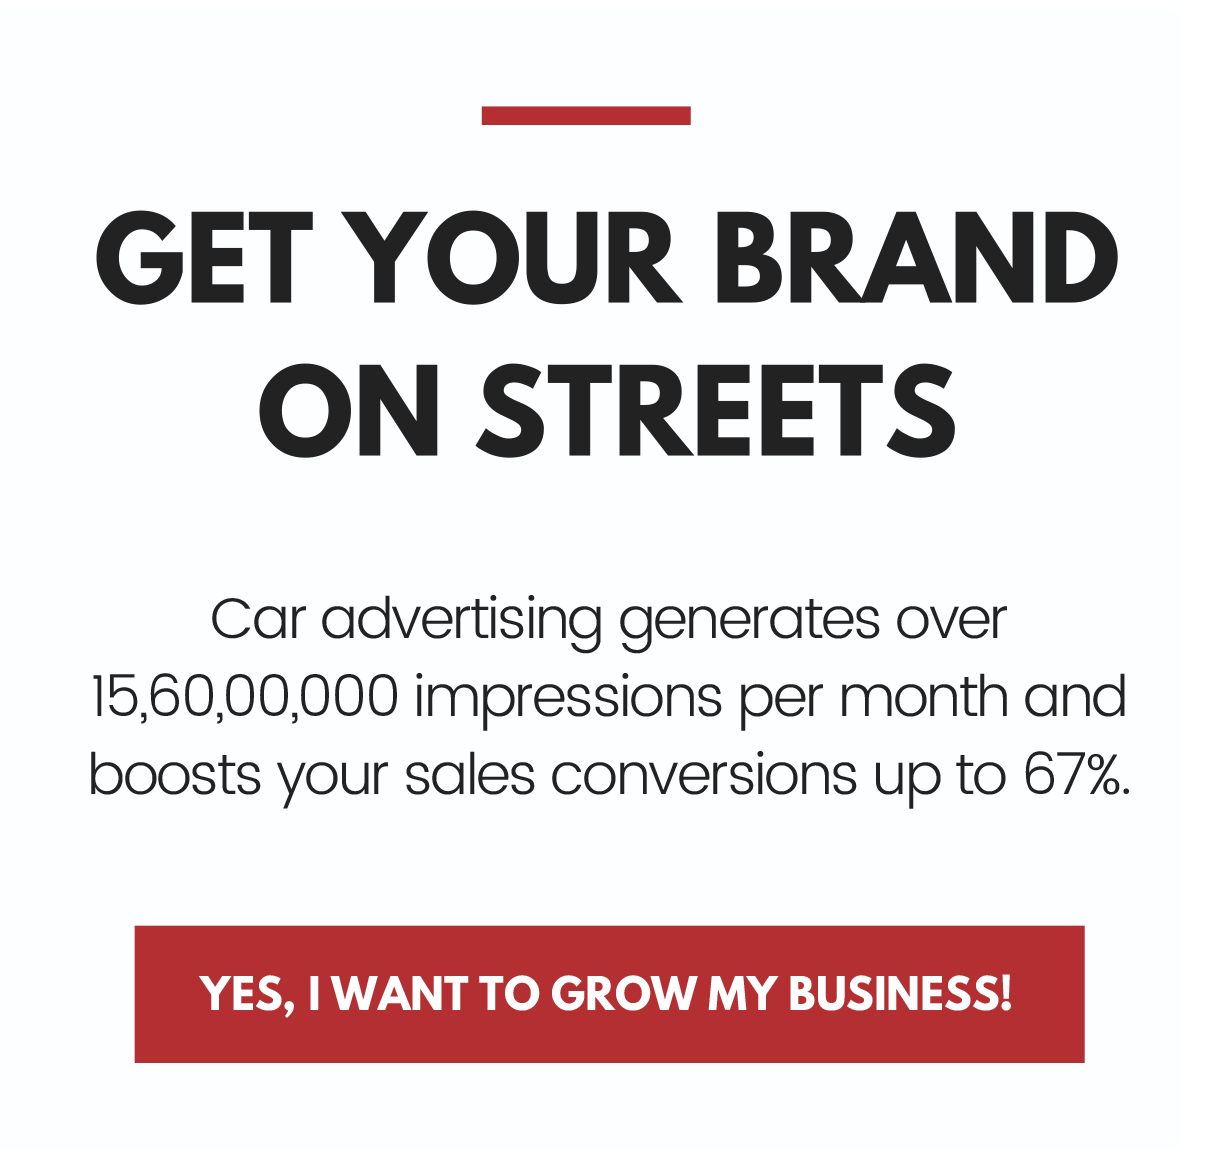 GET YOUR BRAND ON STREETS WITH CAR ADVERTISING